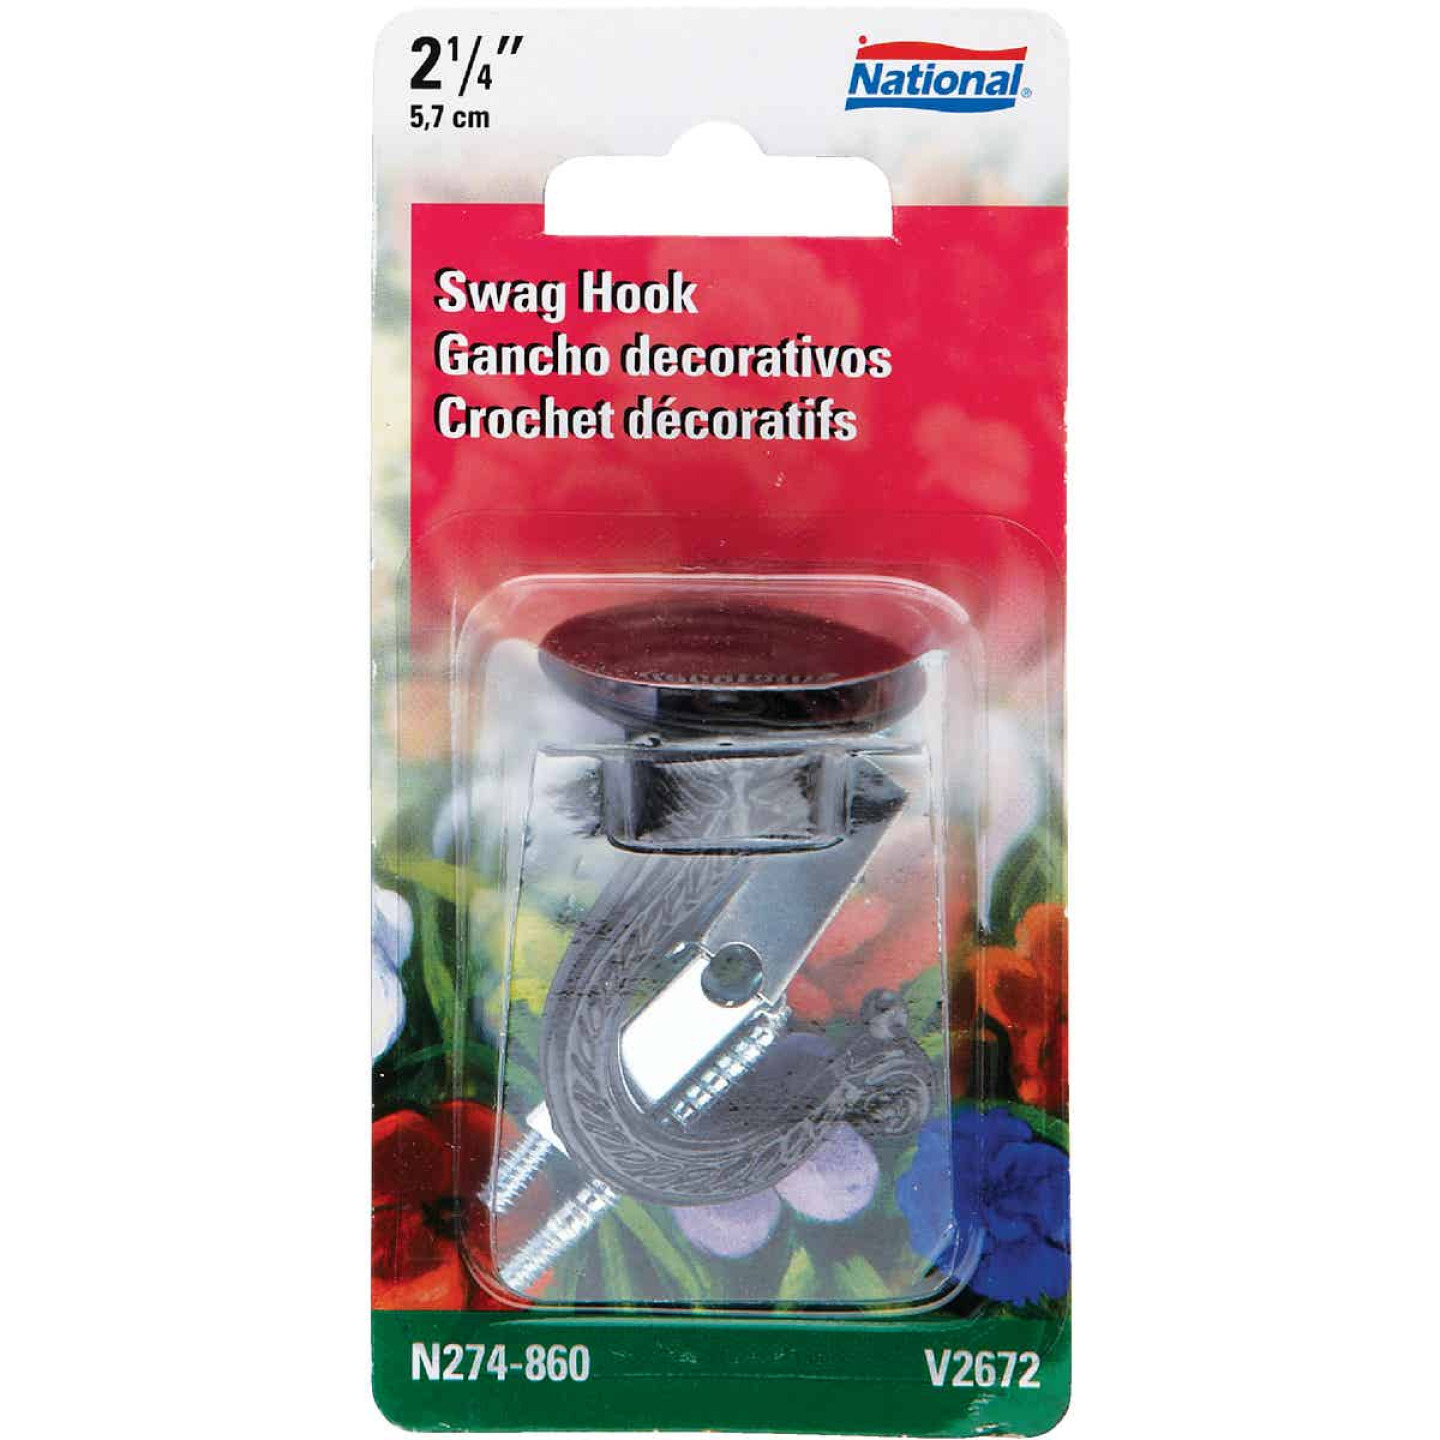 National 2-1/4 In. Black Die Cast Swag Hook Image 1